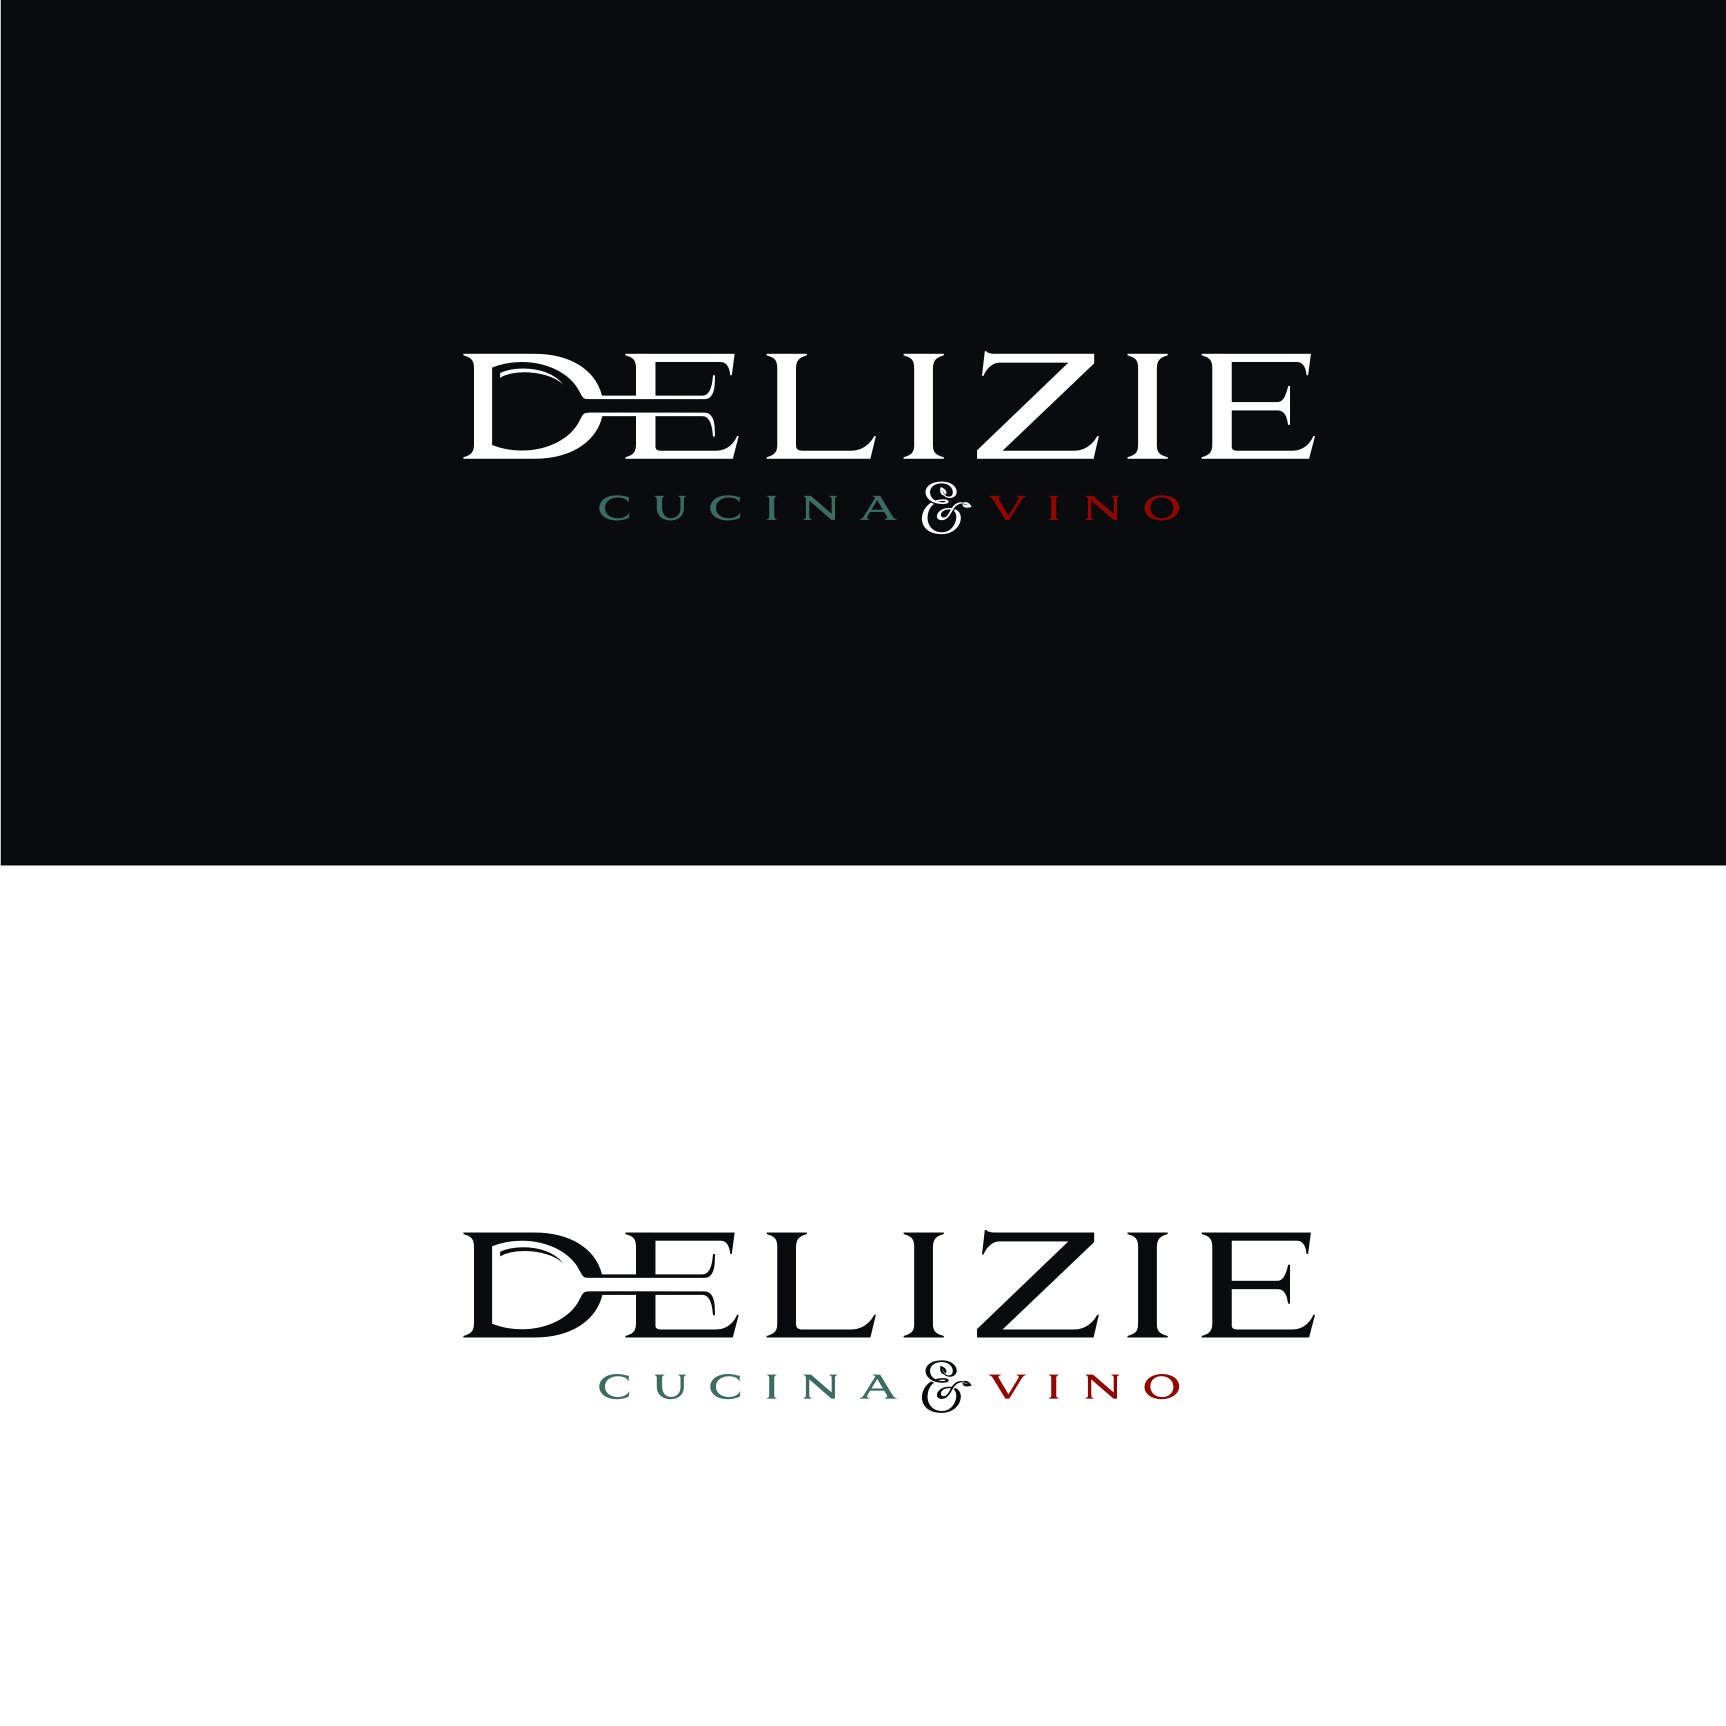 Help Delizie Cucina + Vino with a new logo